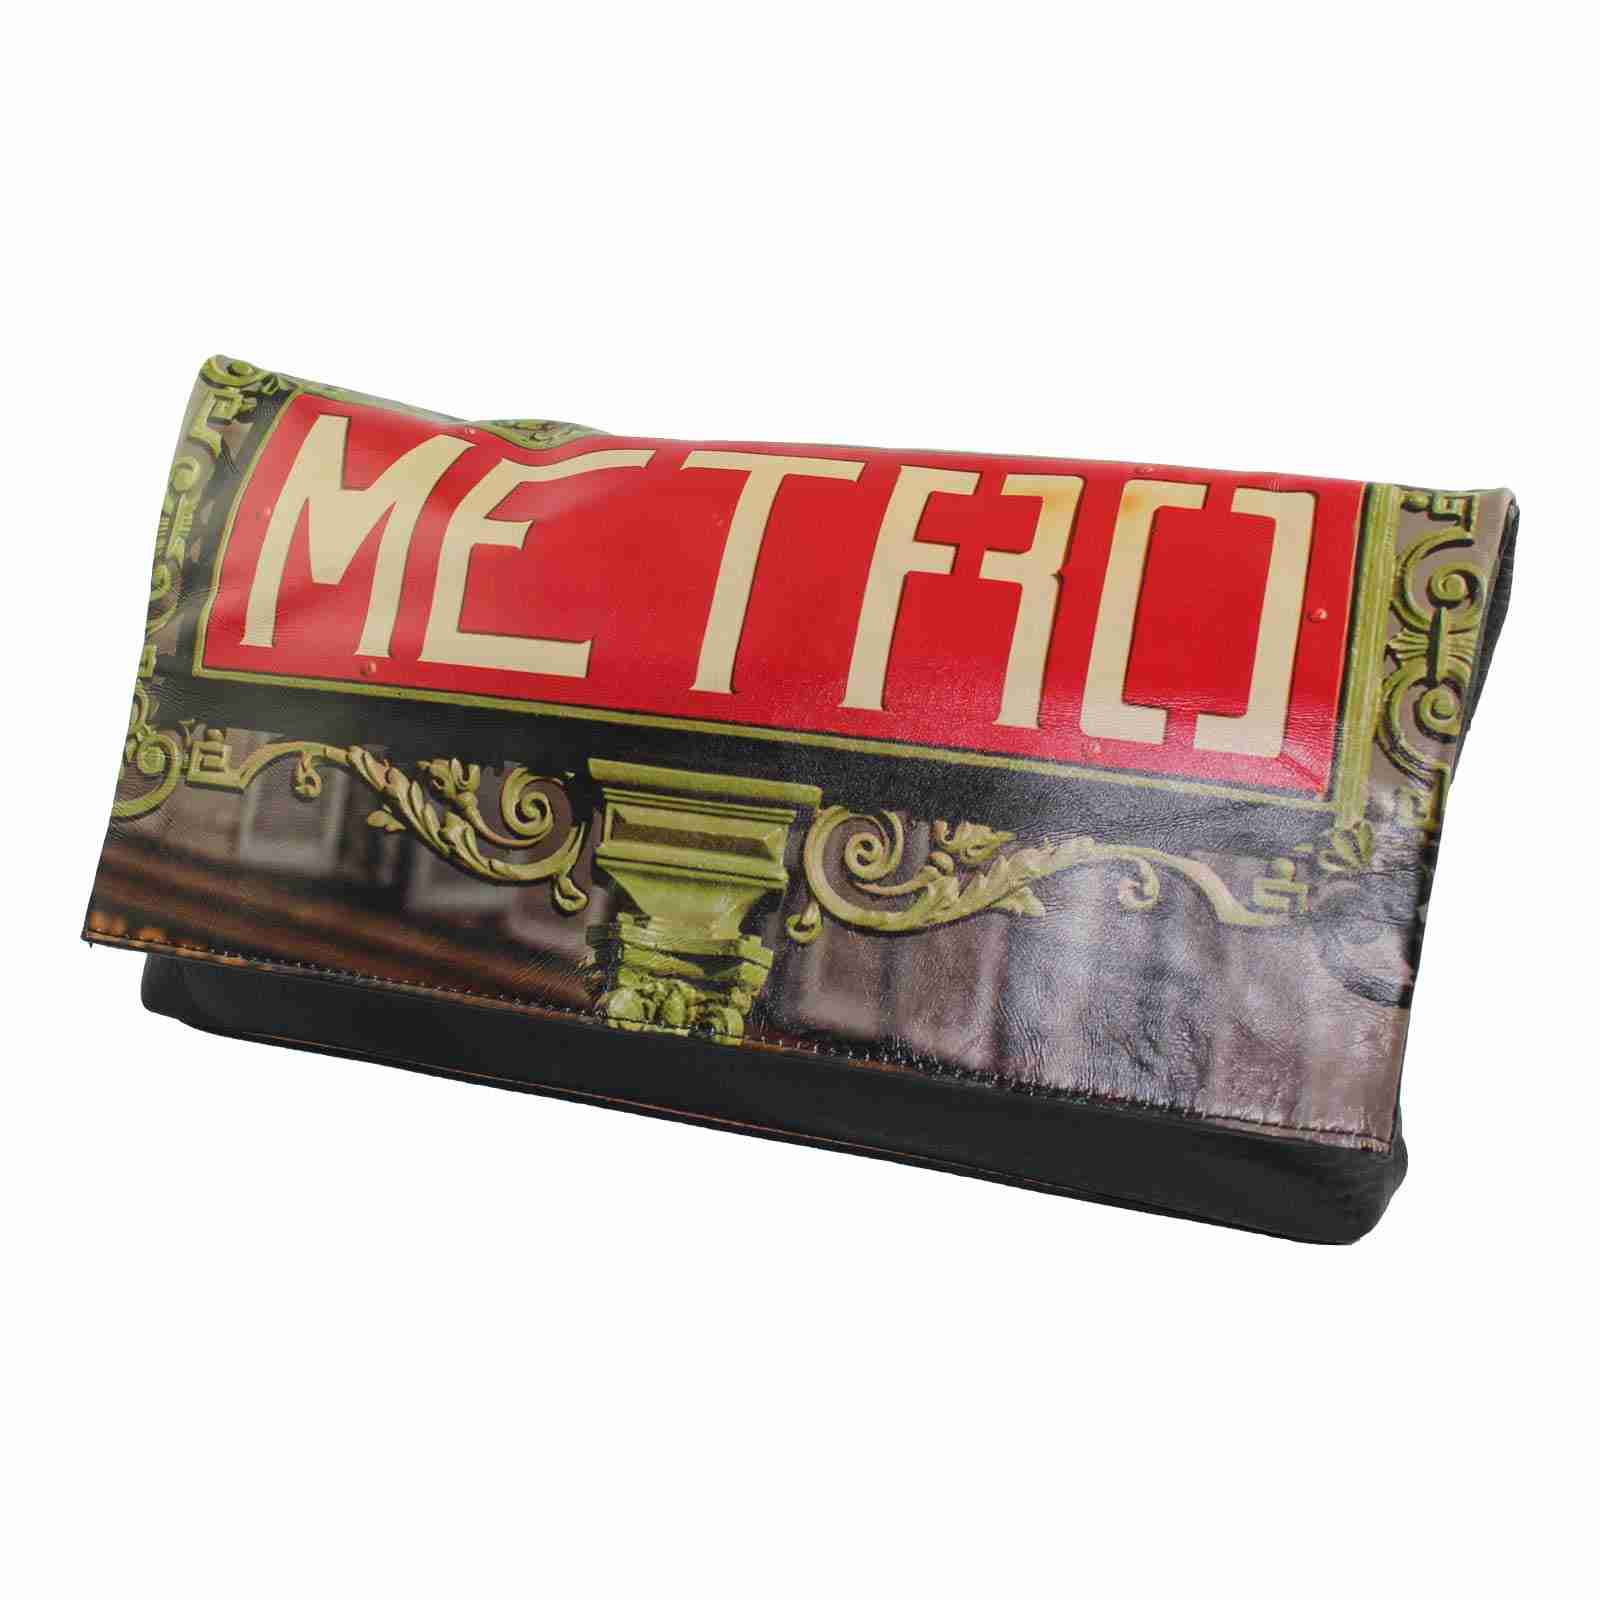 Paris Metro Photo Clutch by Studio Manhattan